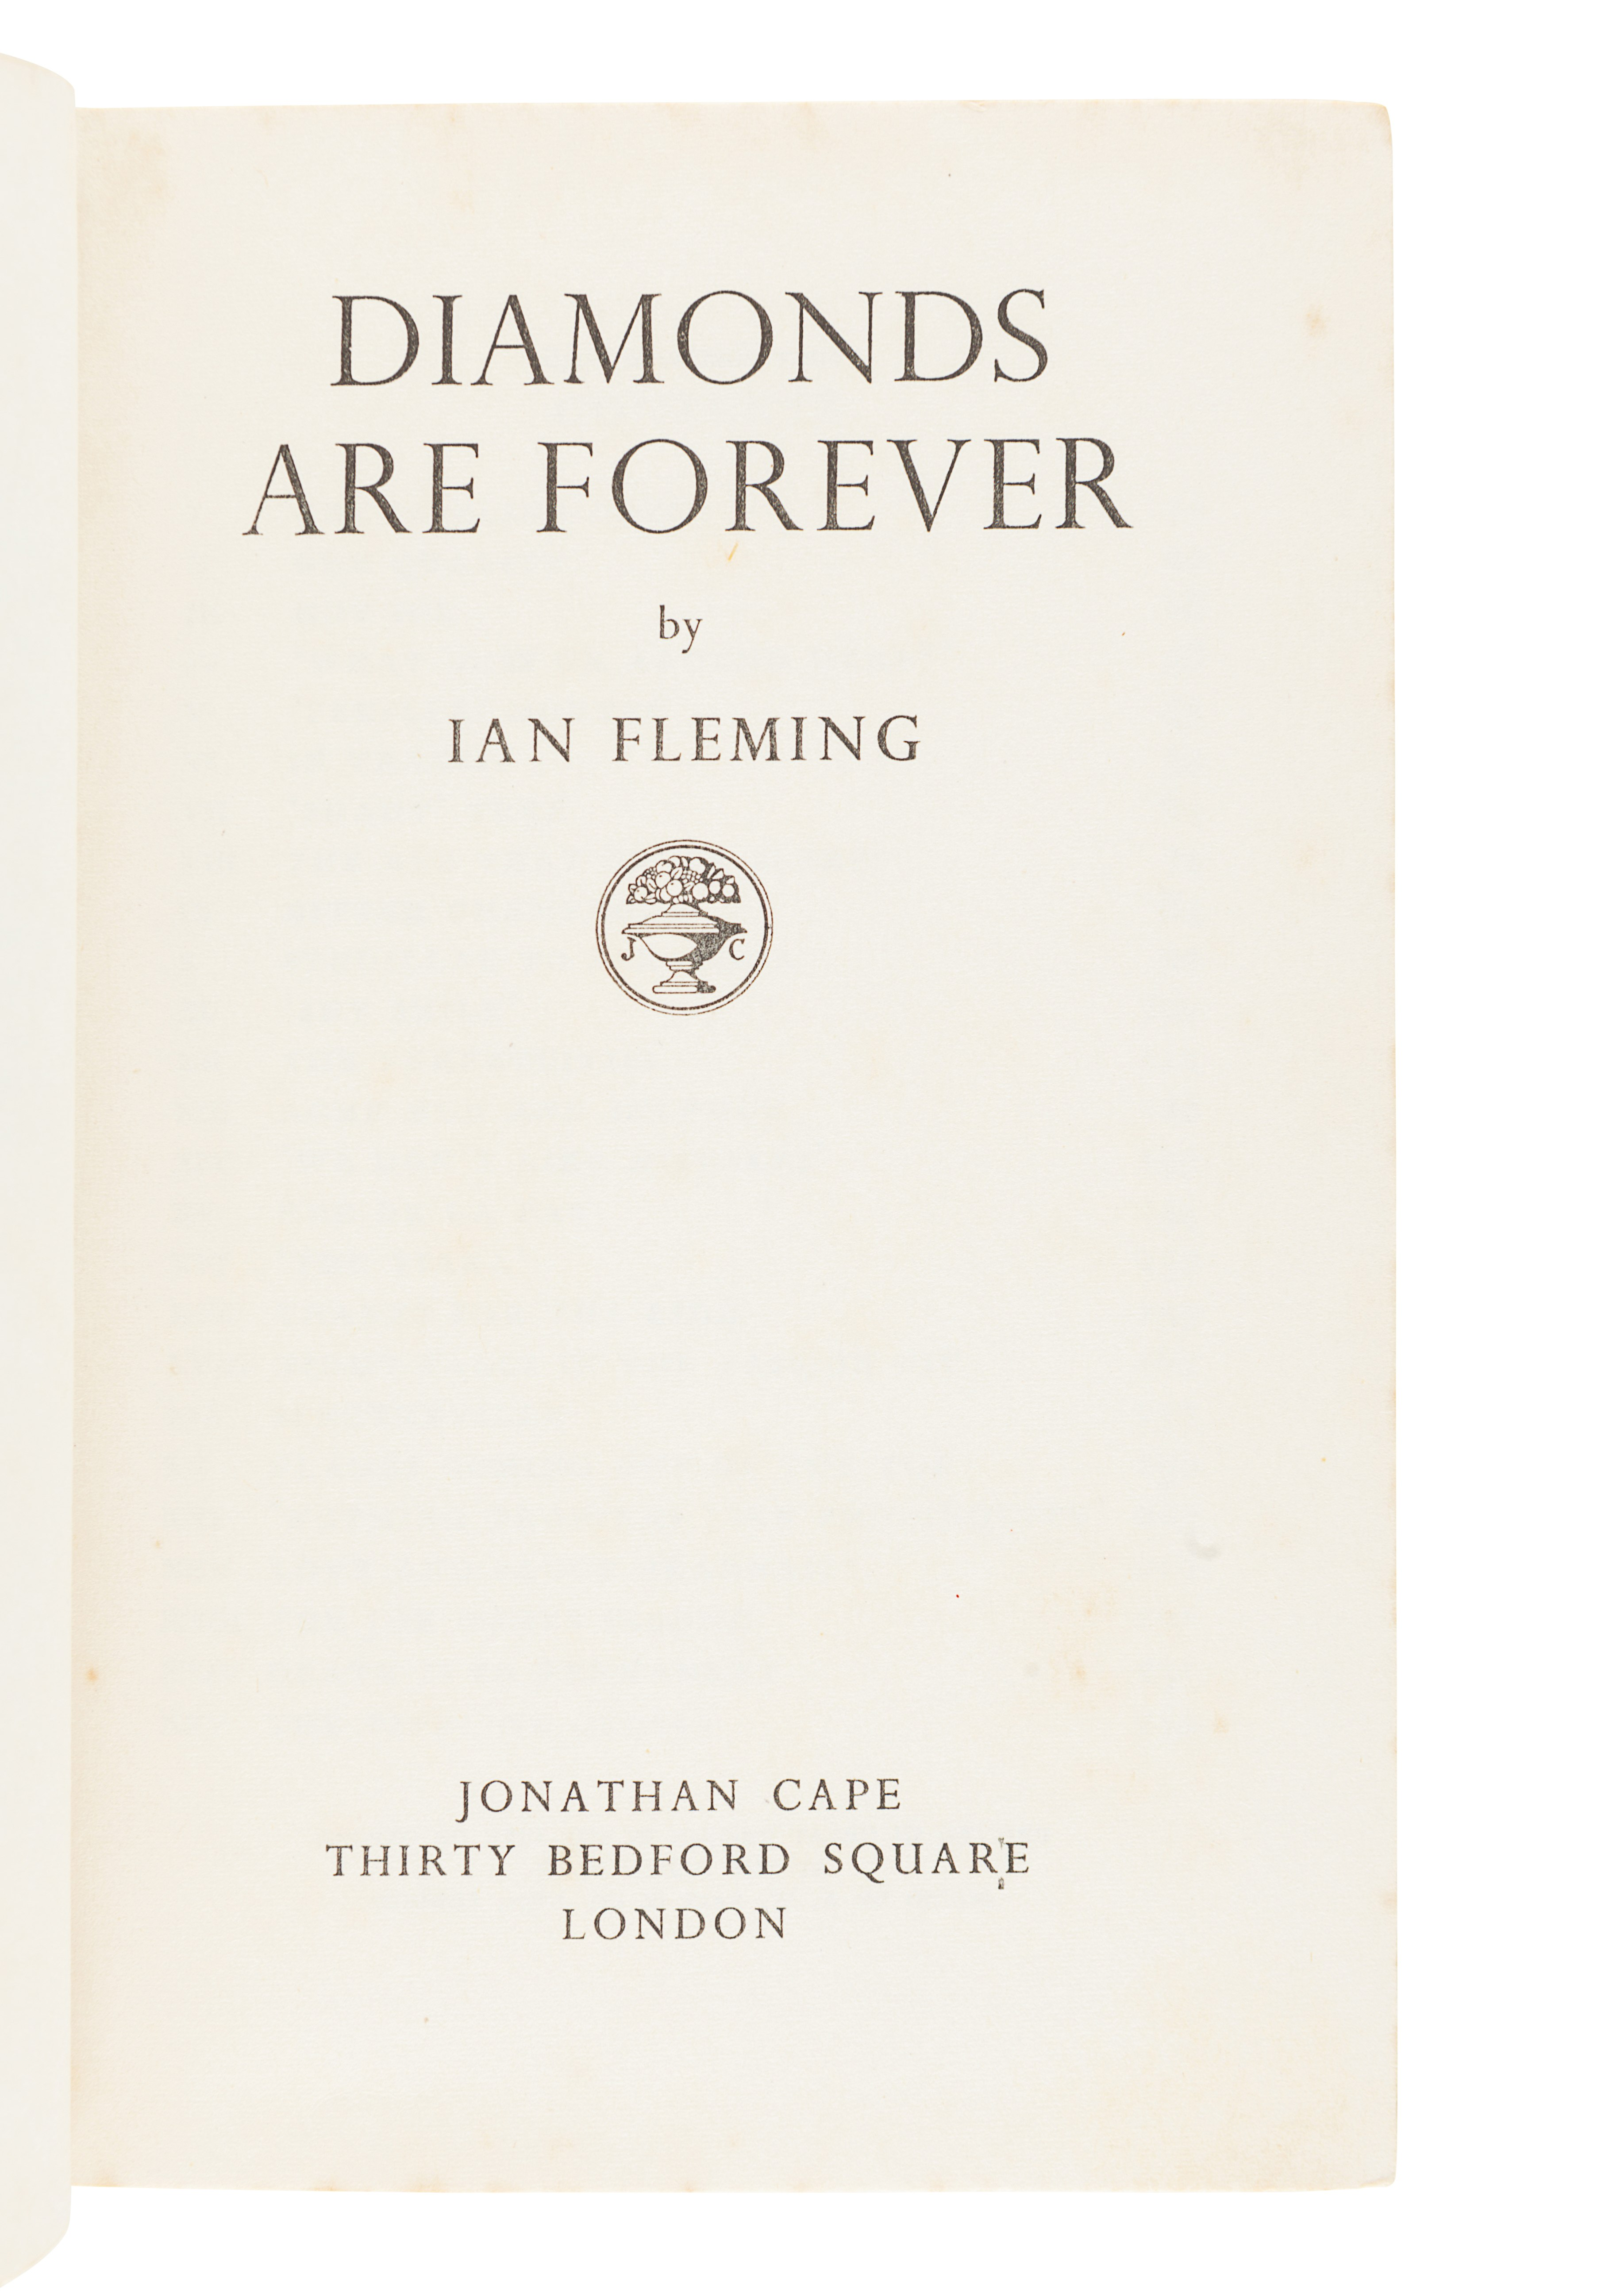 FLEMING, Ian (1908-1964). Diamonds Are Forever. London: Jonathan Cape, 1956. - Image 3 of 3